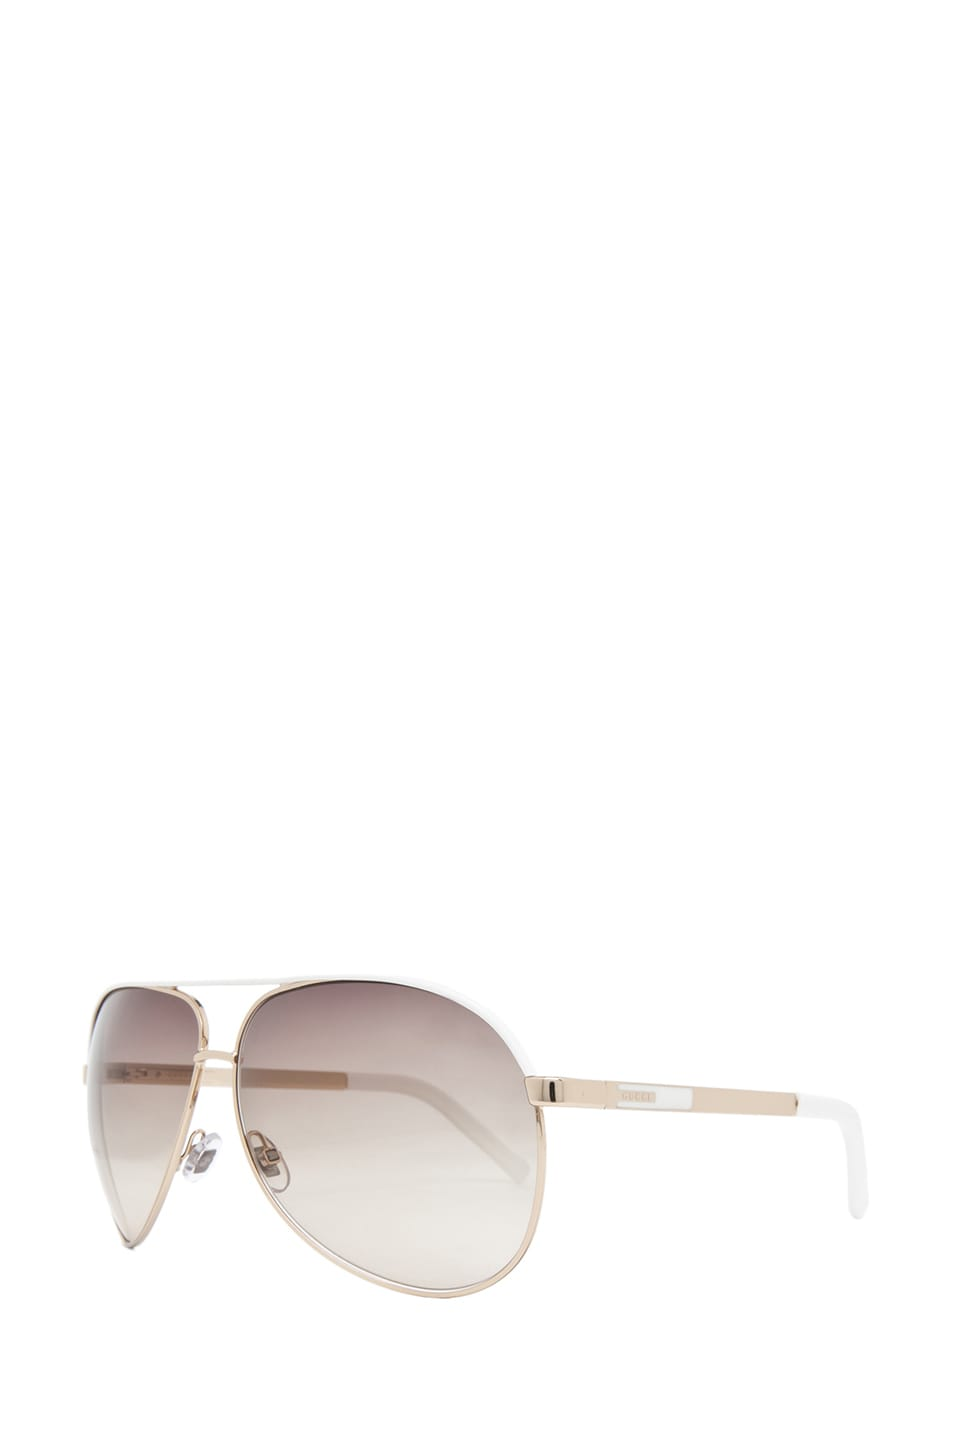 Image 2 of Gucci 1827 Sunglasses in Gold & Brown Gray Gradient